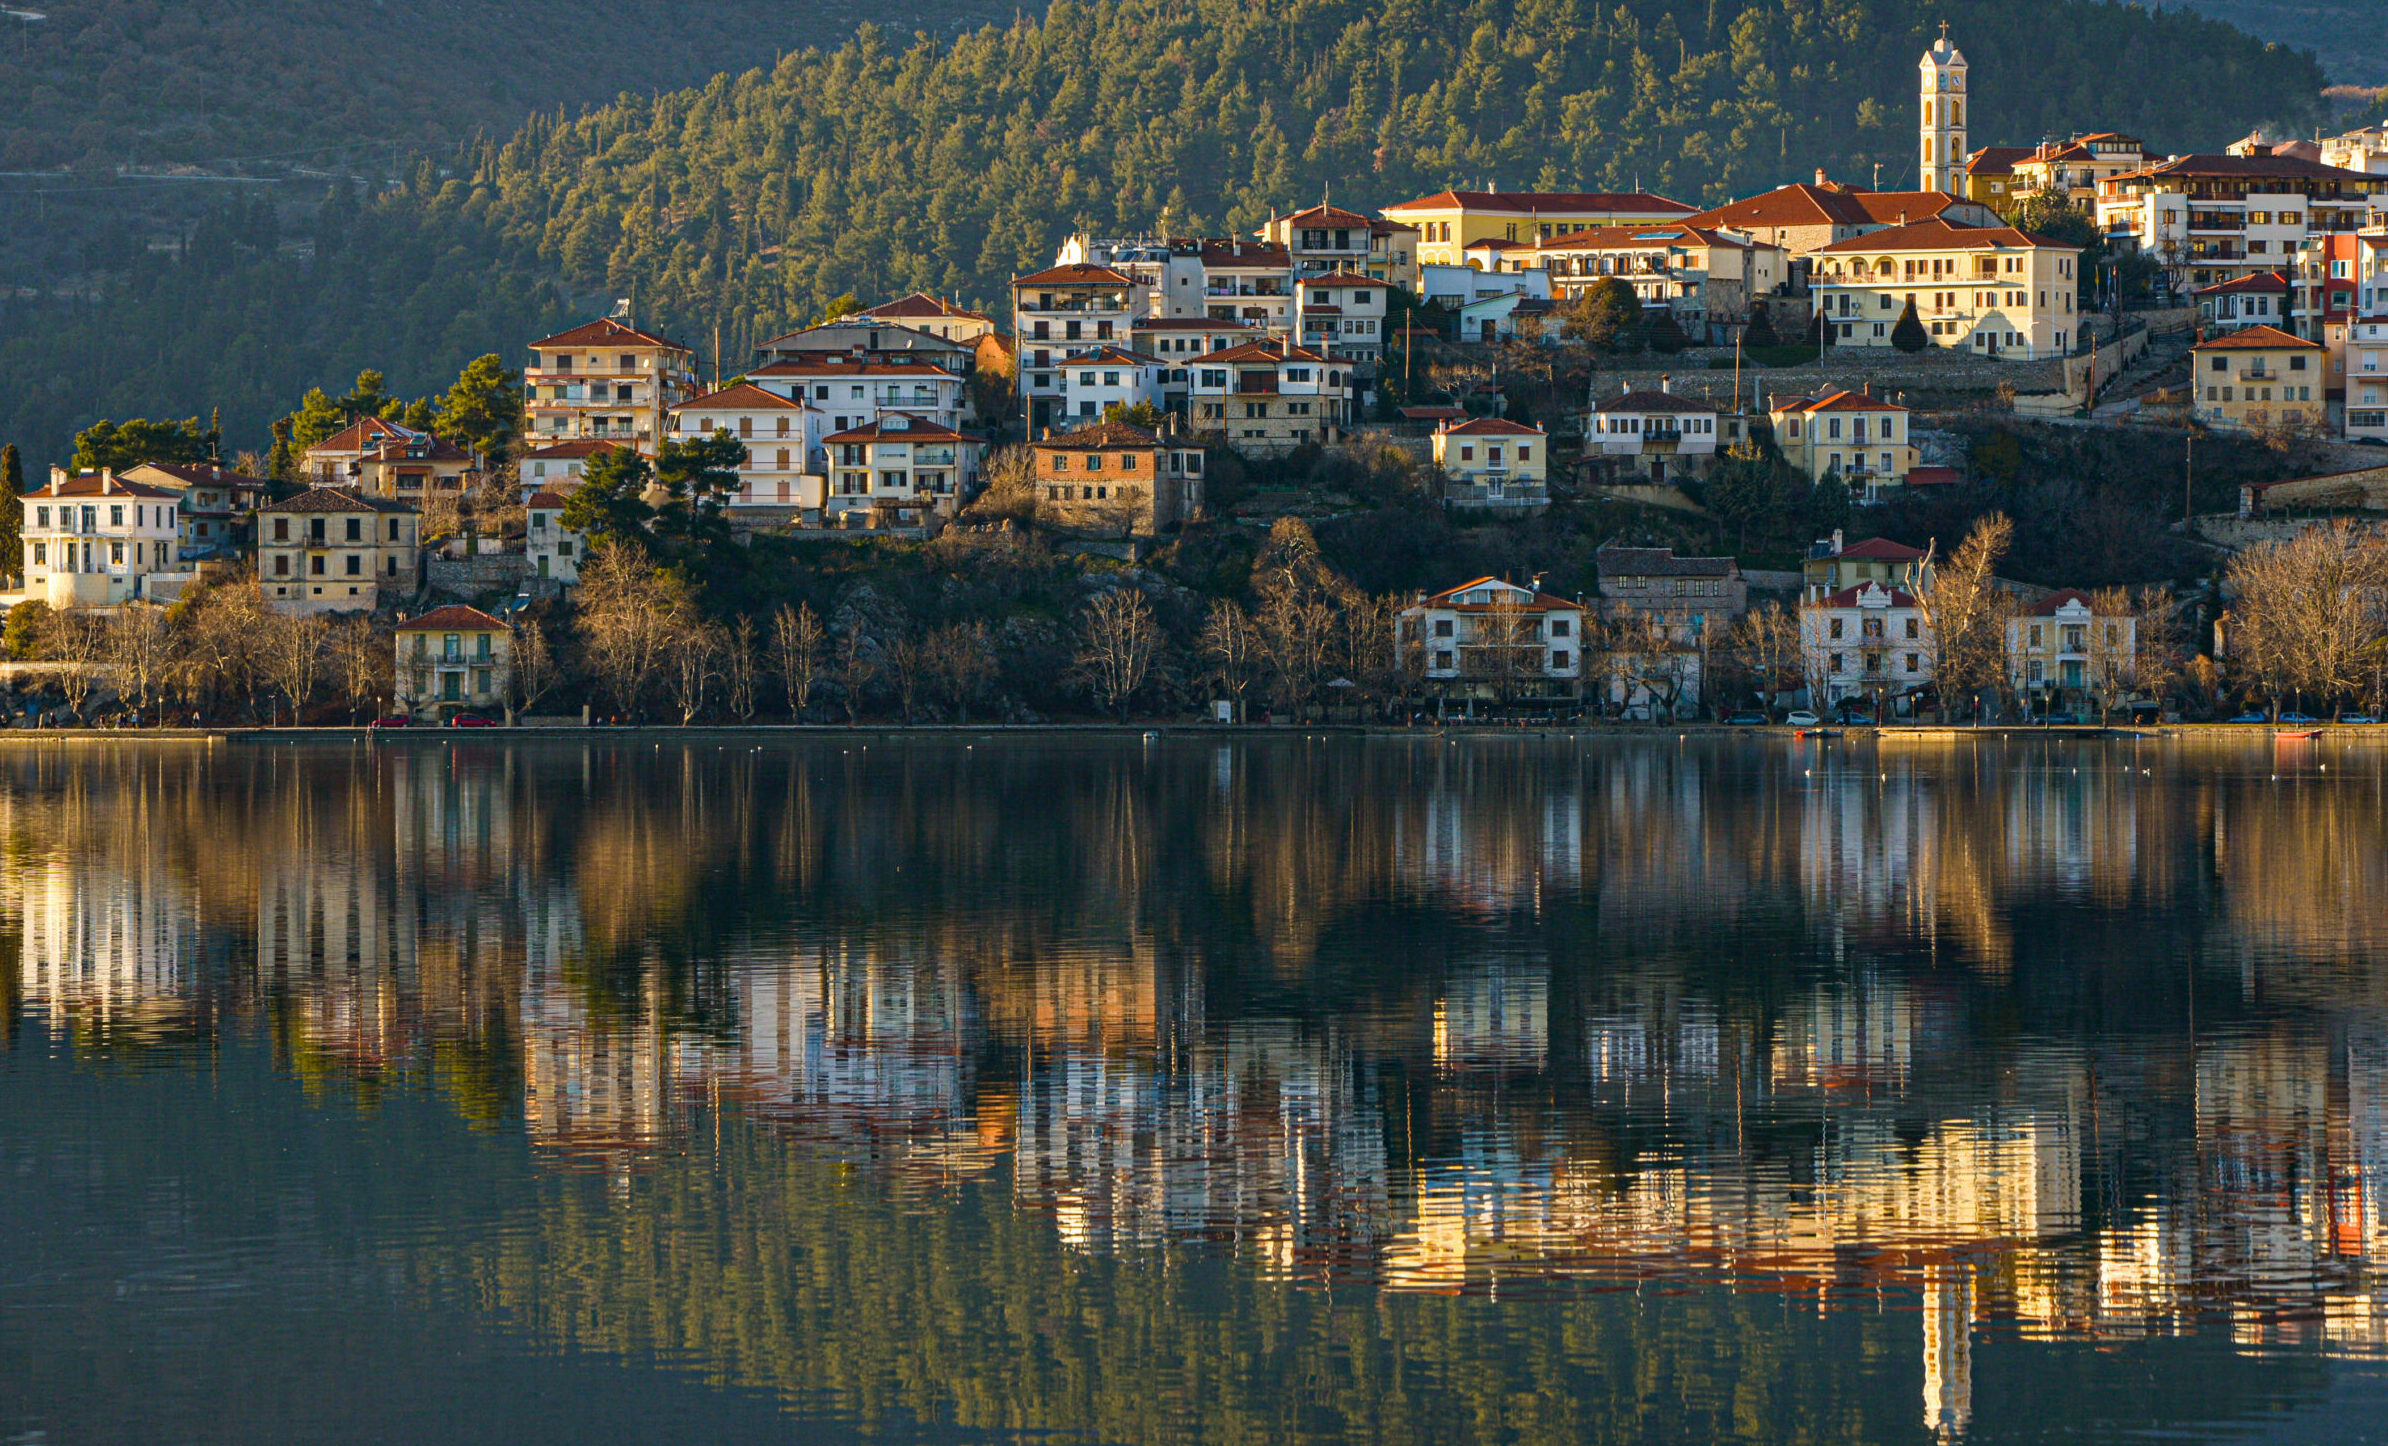 Trip to Lake Kastoria: Nature at its best